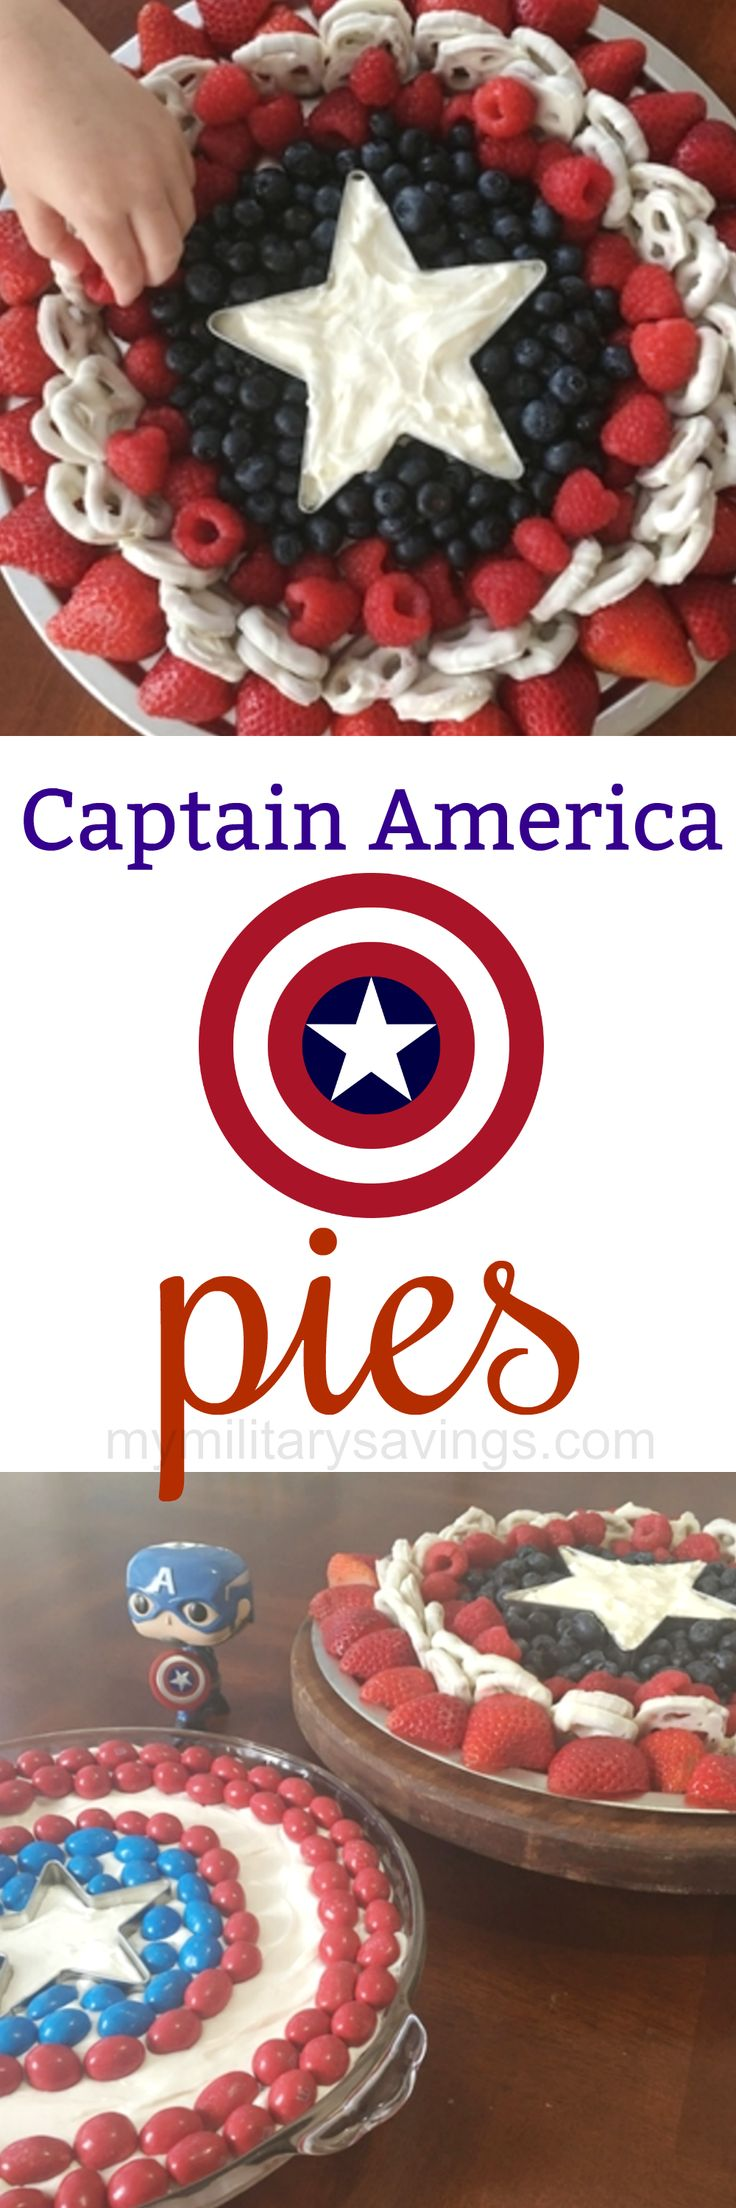 2 delicious Captain America inspired super hero pie recipes! Add this to your dessert recipes board!